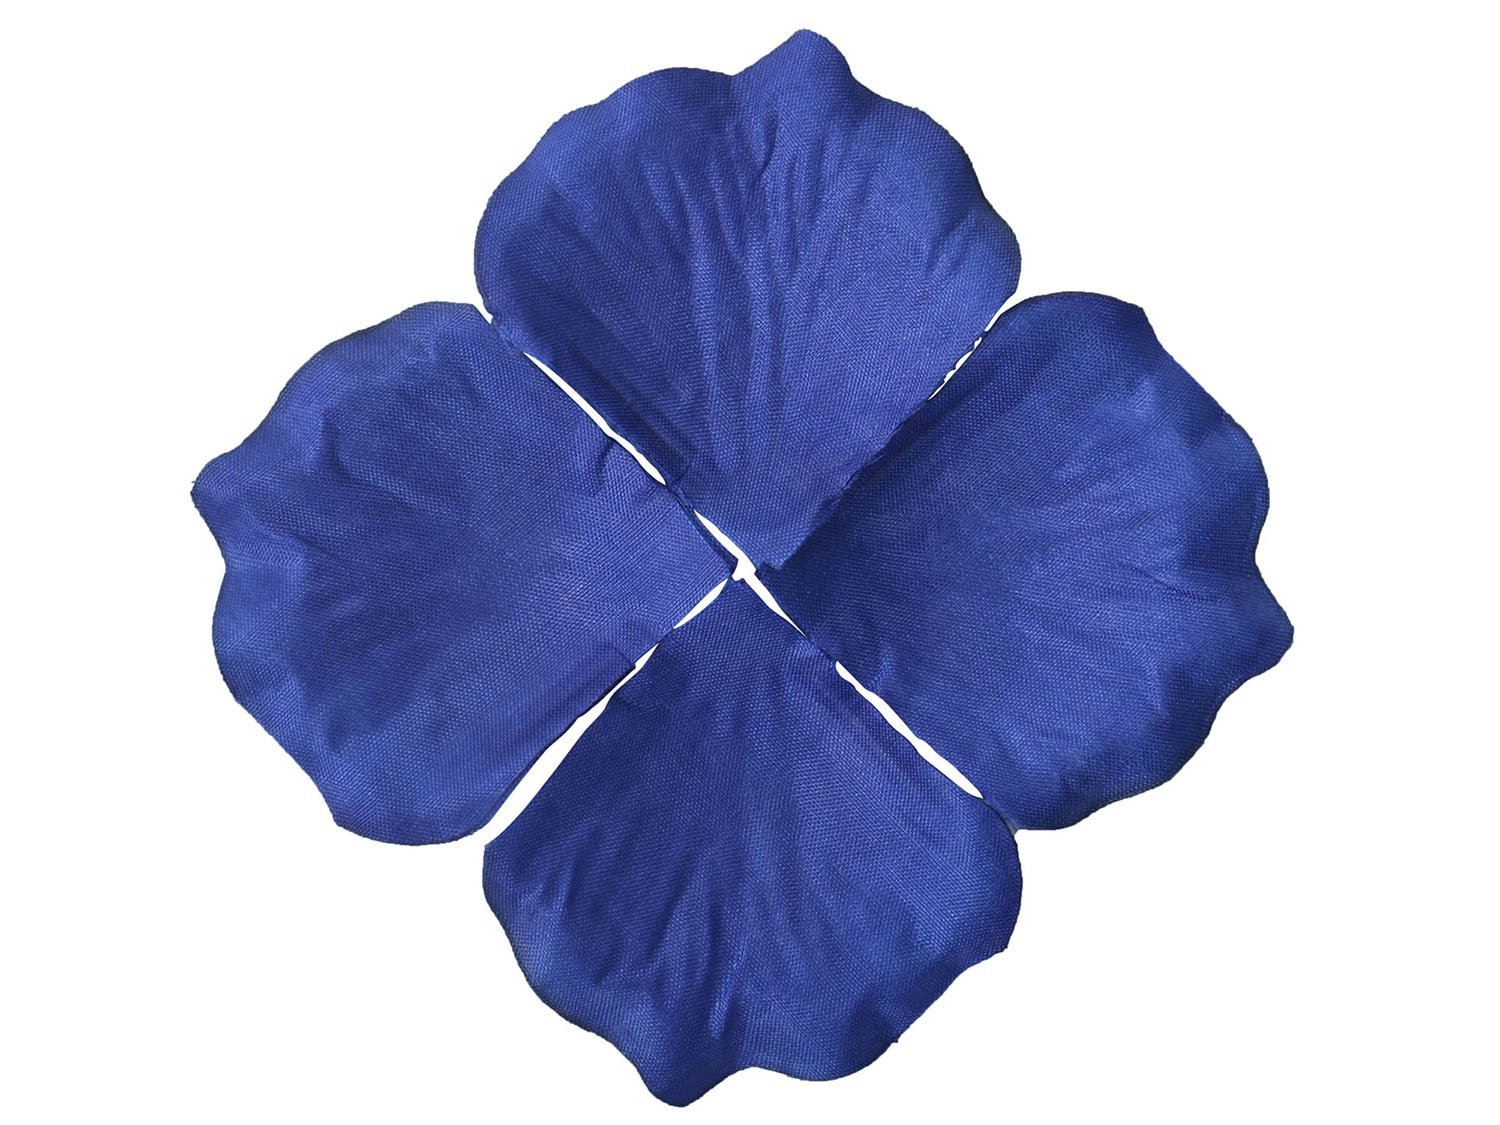 Cheap royal blue petals find royal blue petals deals on line at get quotations ashopz 500pcs artificial silk rose flower petals wedding decor bulk royal blue izmirmasajfo